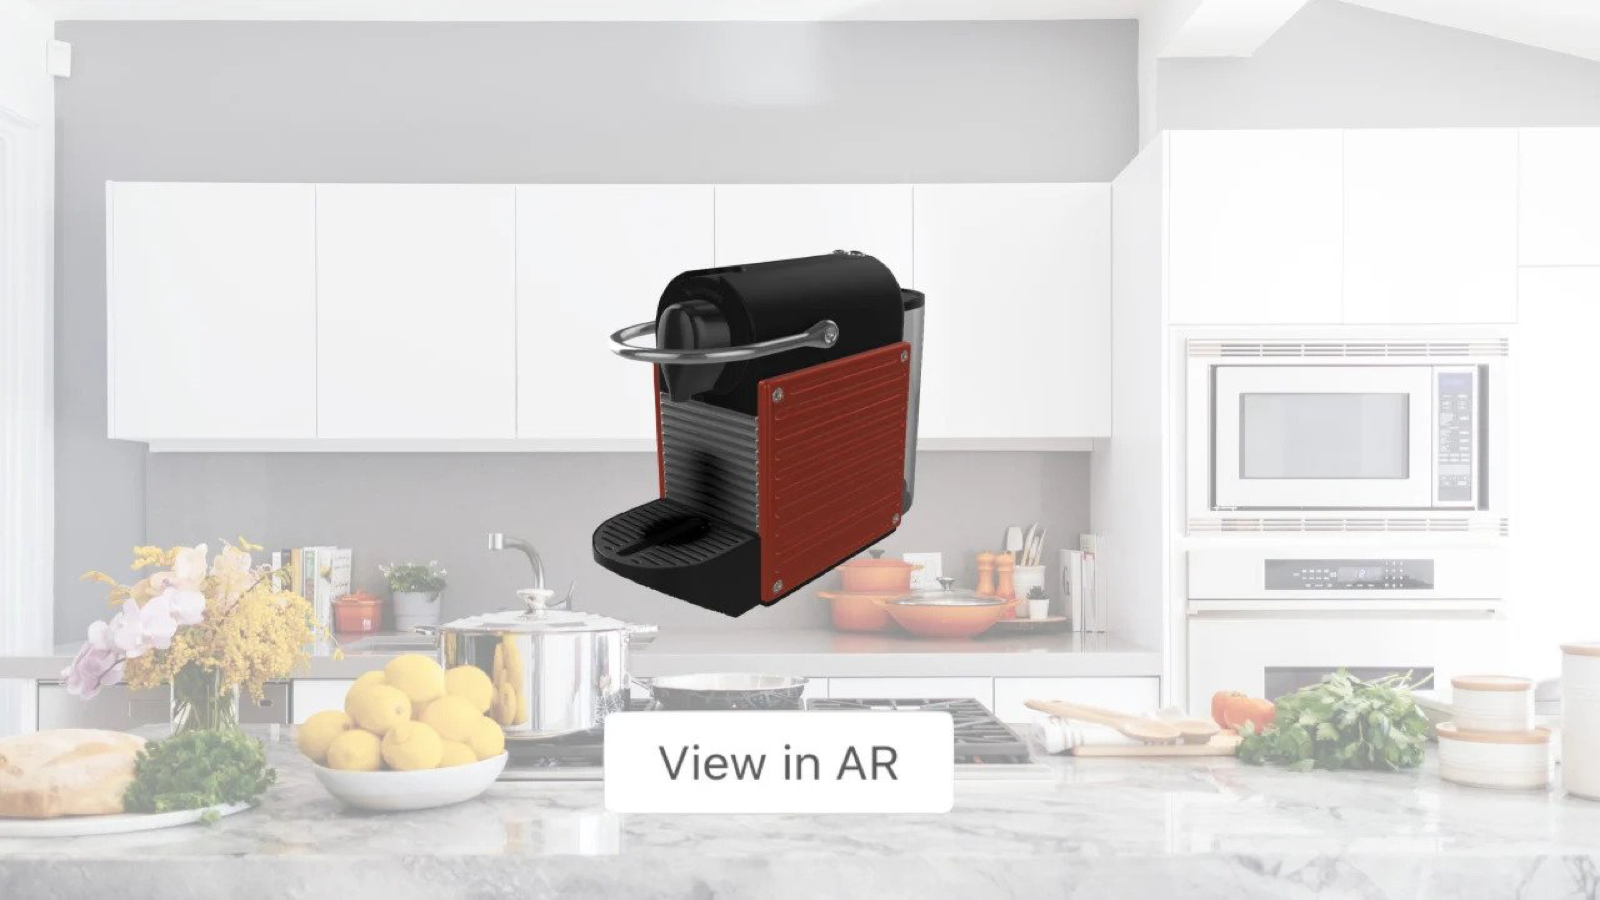 Enable shoppers to place products in their home with AR